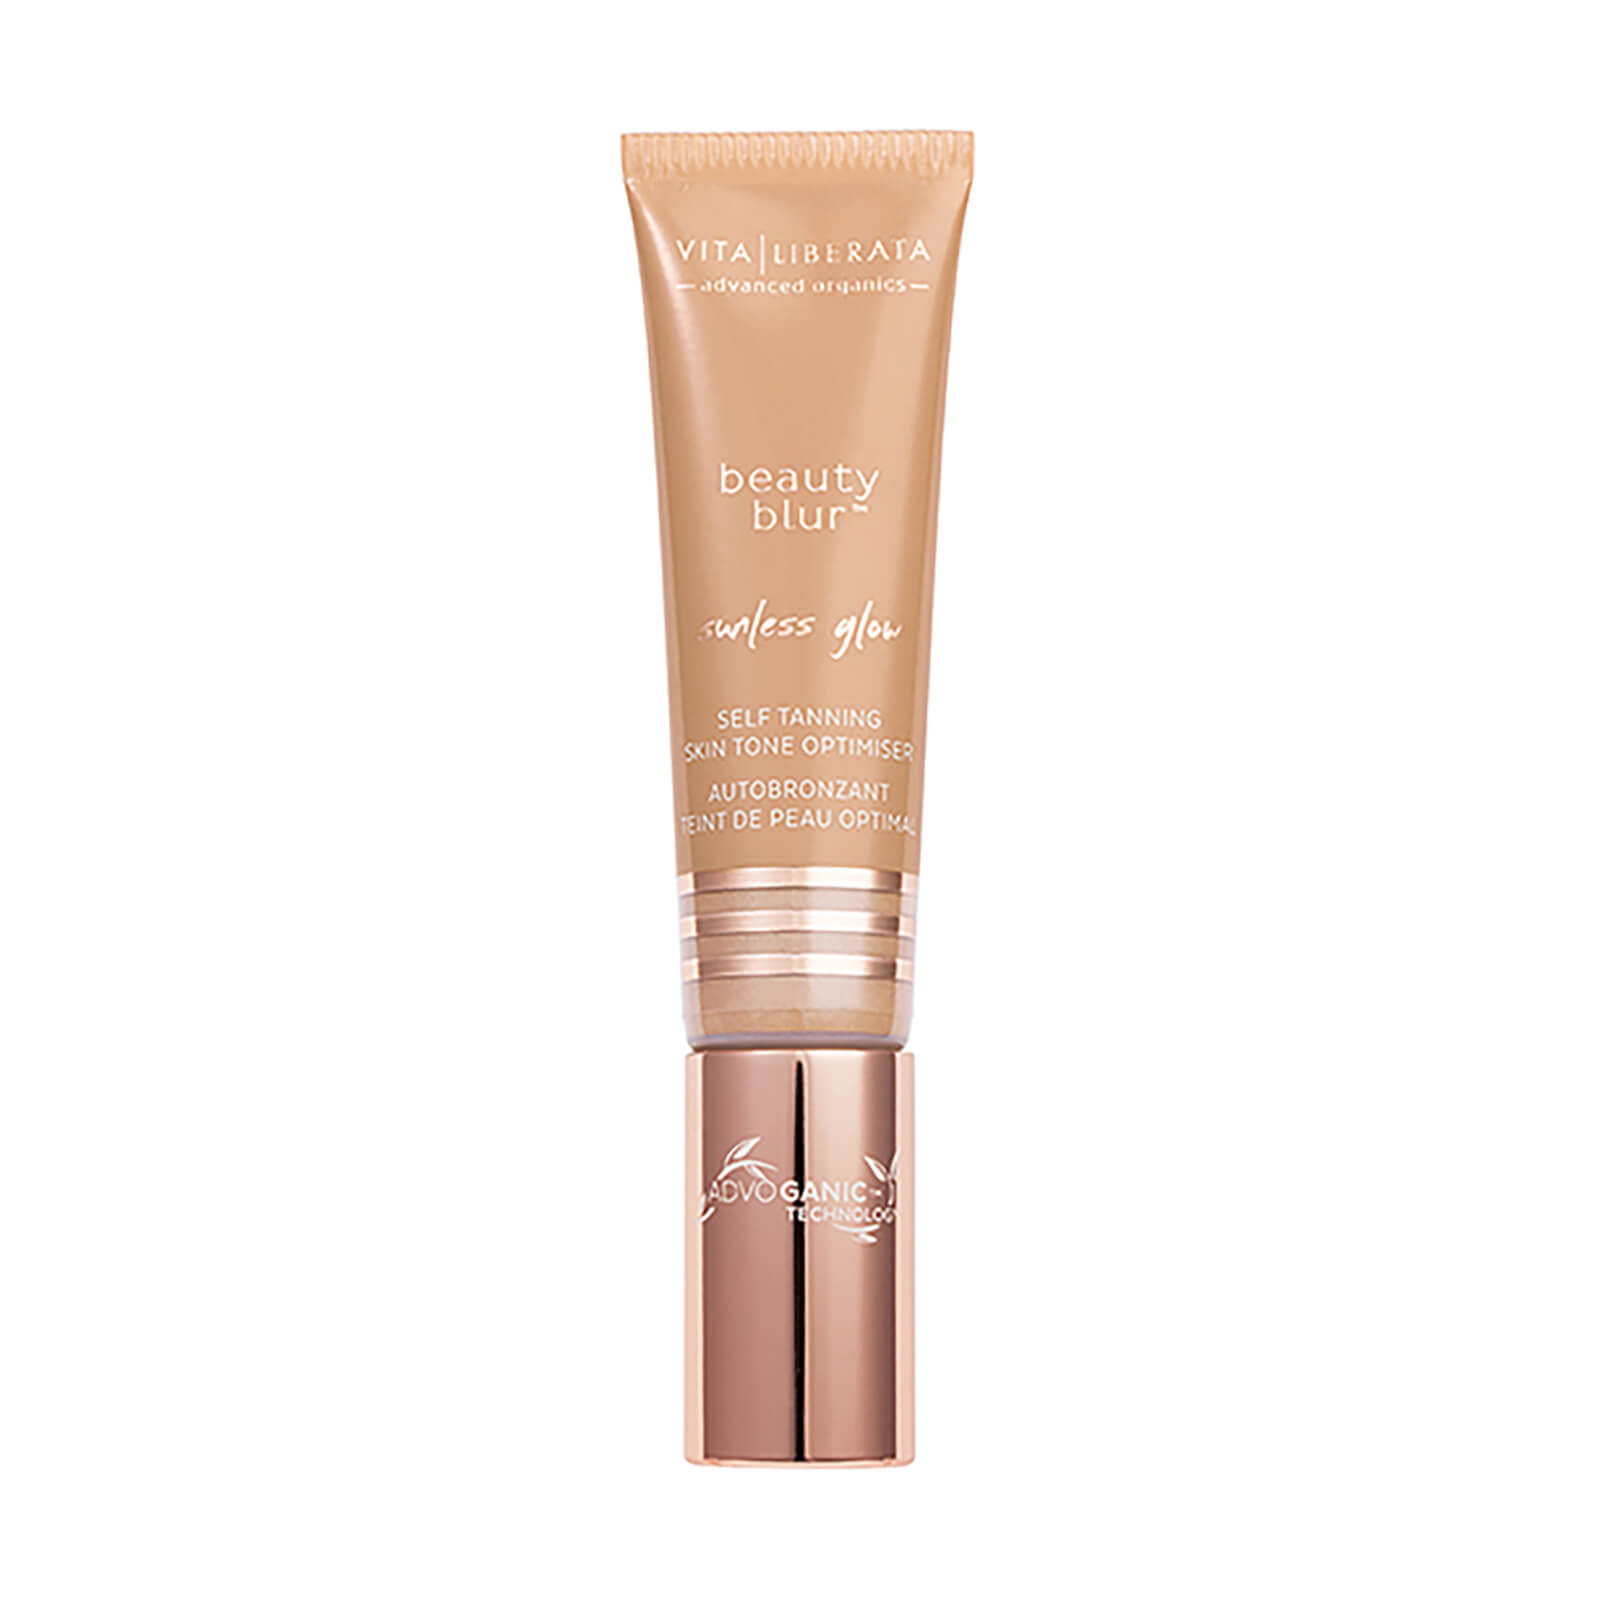 Vita Liberata Beauty Blur Sunless Glow - 30ml (Latte Light)